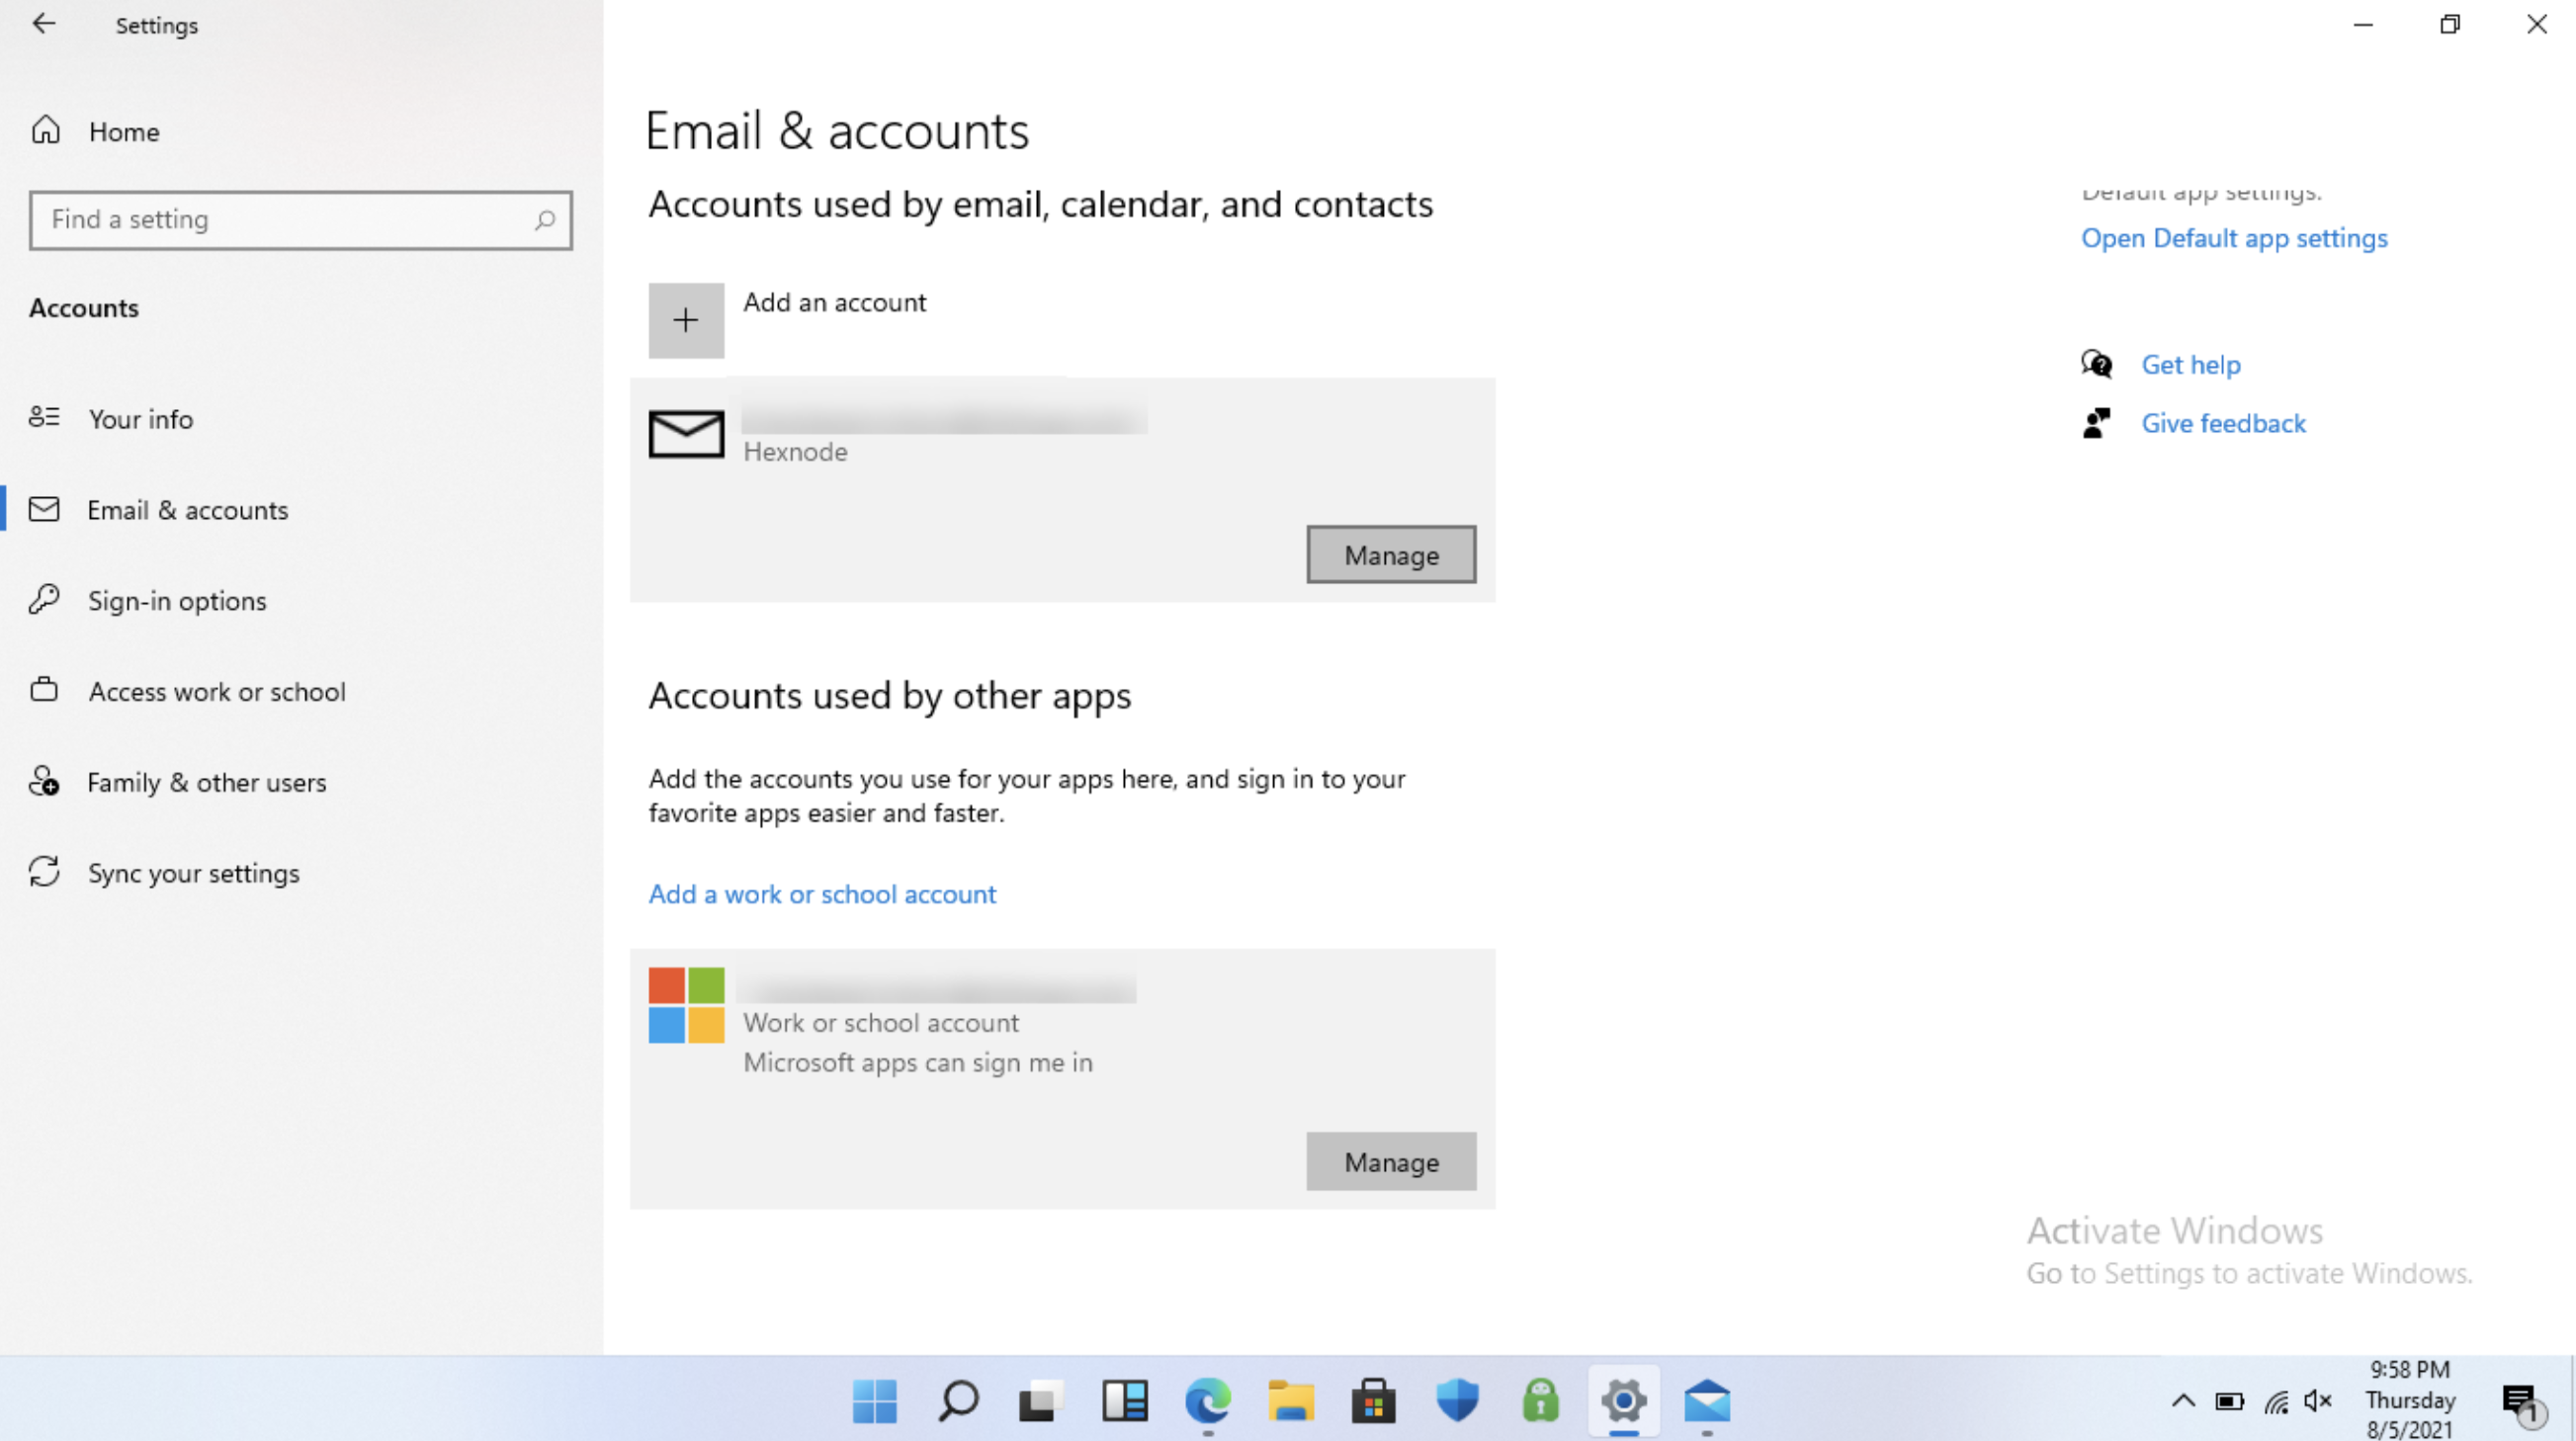 Email account appears on Email & accounts of the device settings page